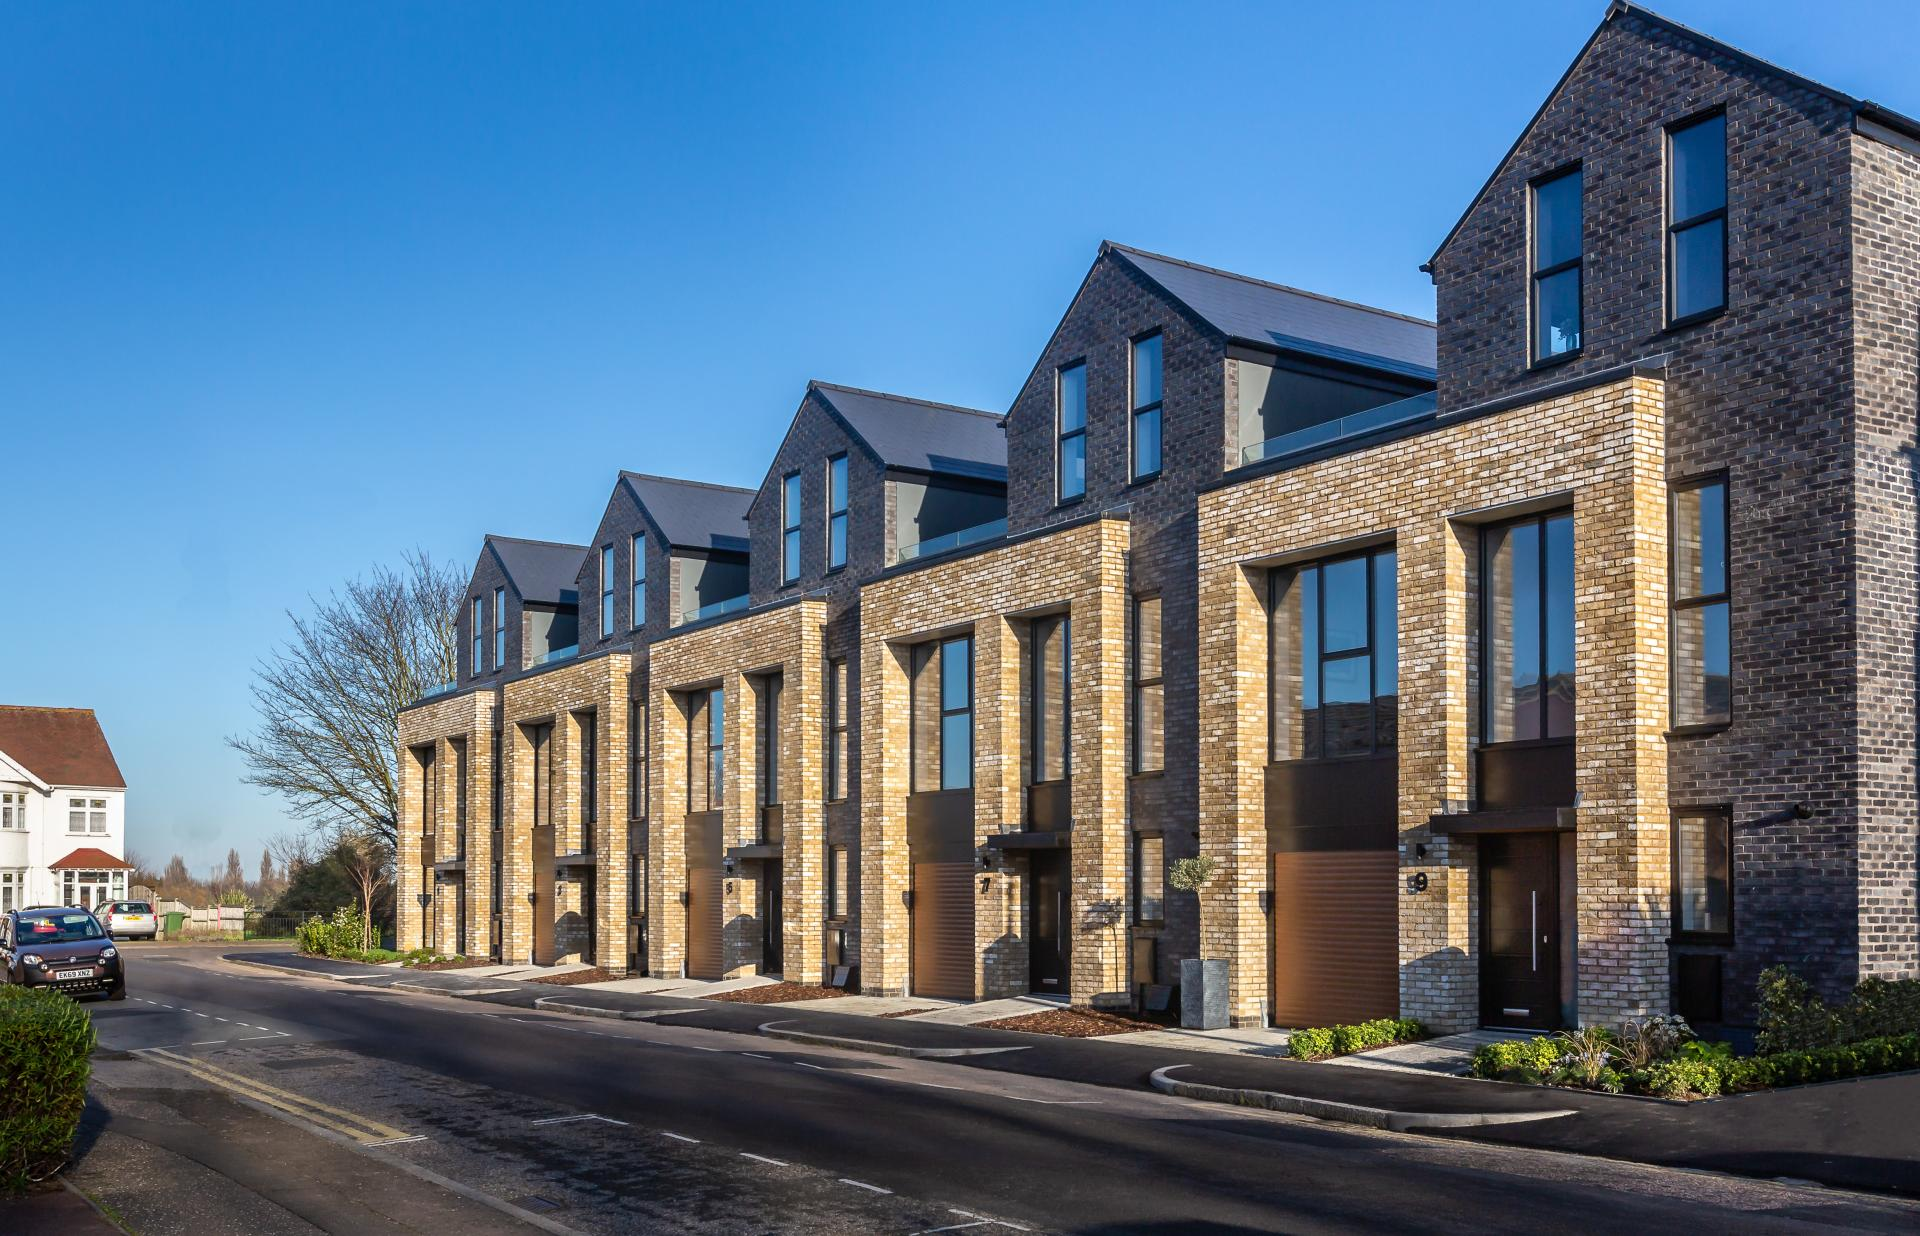 Exterior of new development near the coast -Liane Ryan Photography - Interior and Architectural Photographer in London and Essex